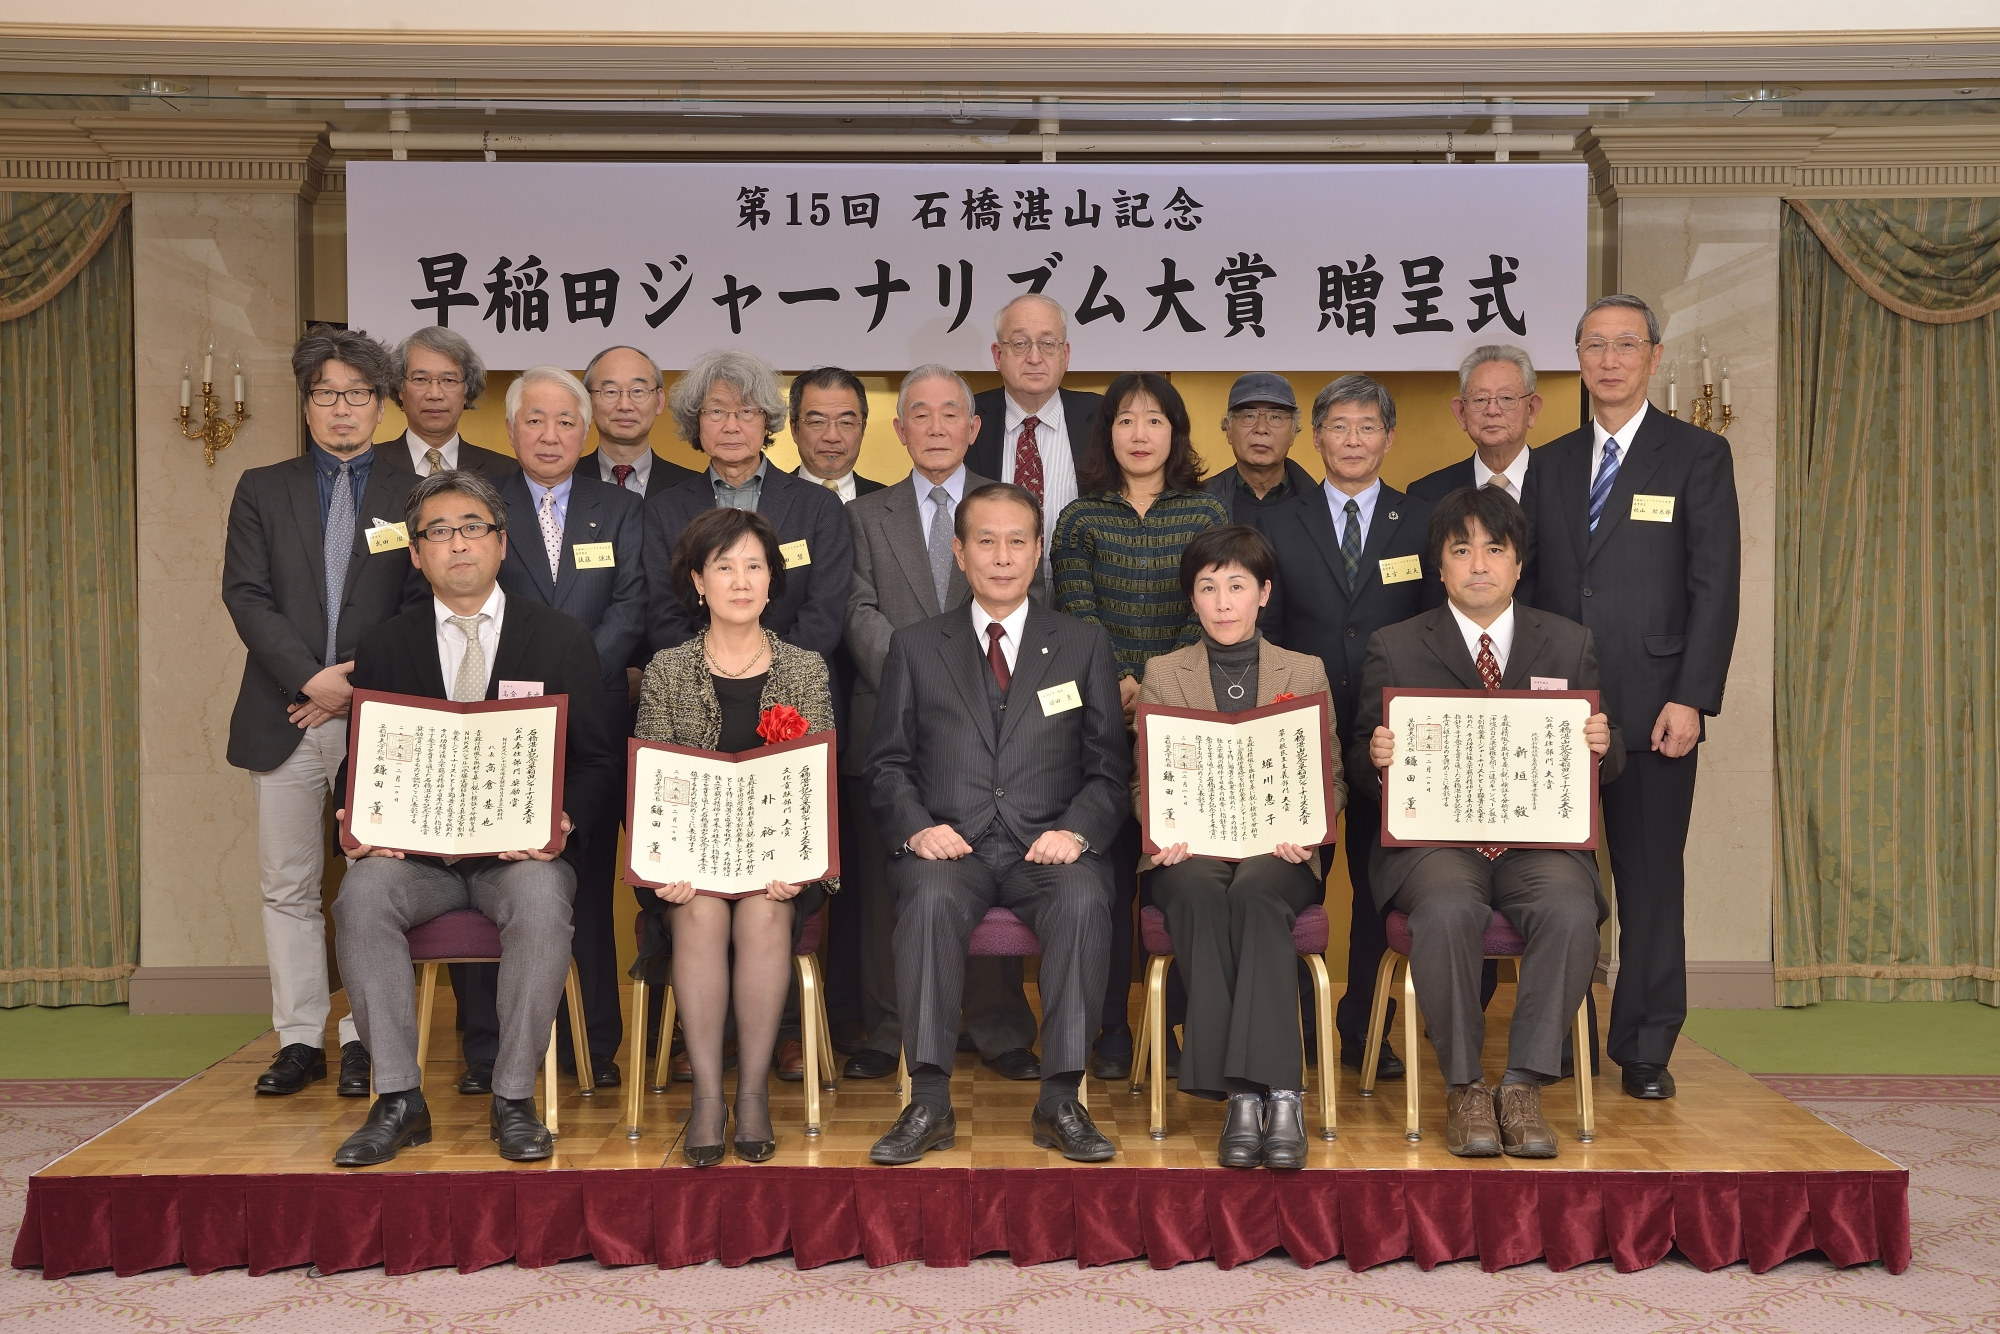 Four recipients honored for journalistic acheivements at 2015 Waseda Journalism Award ceremony